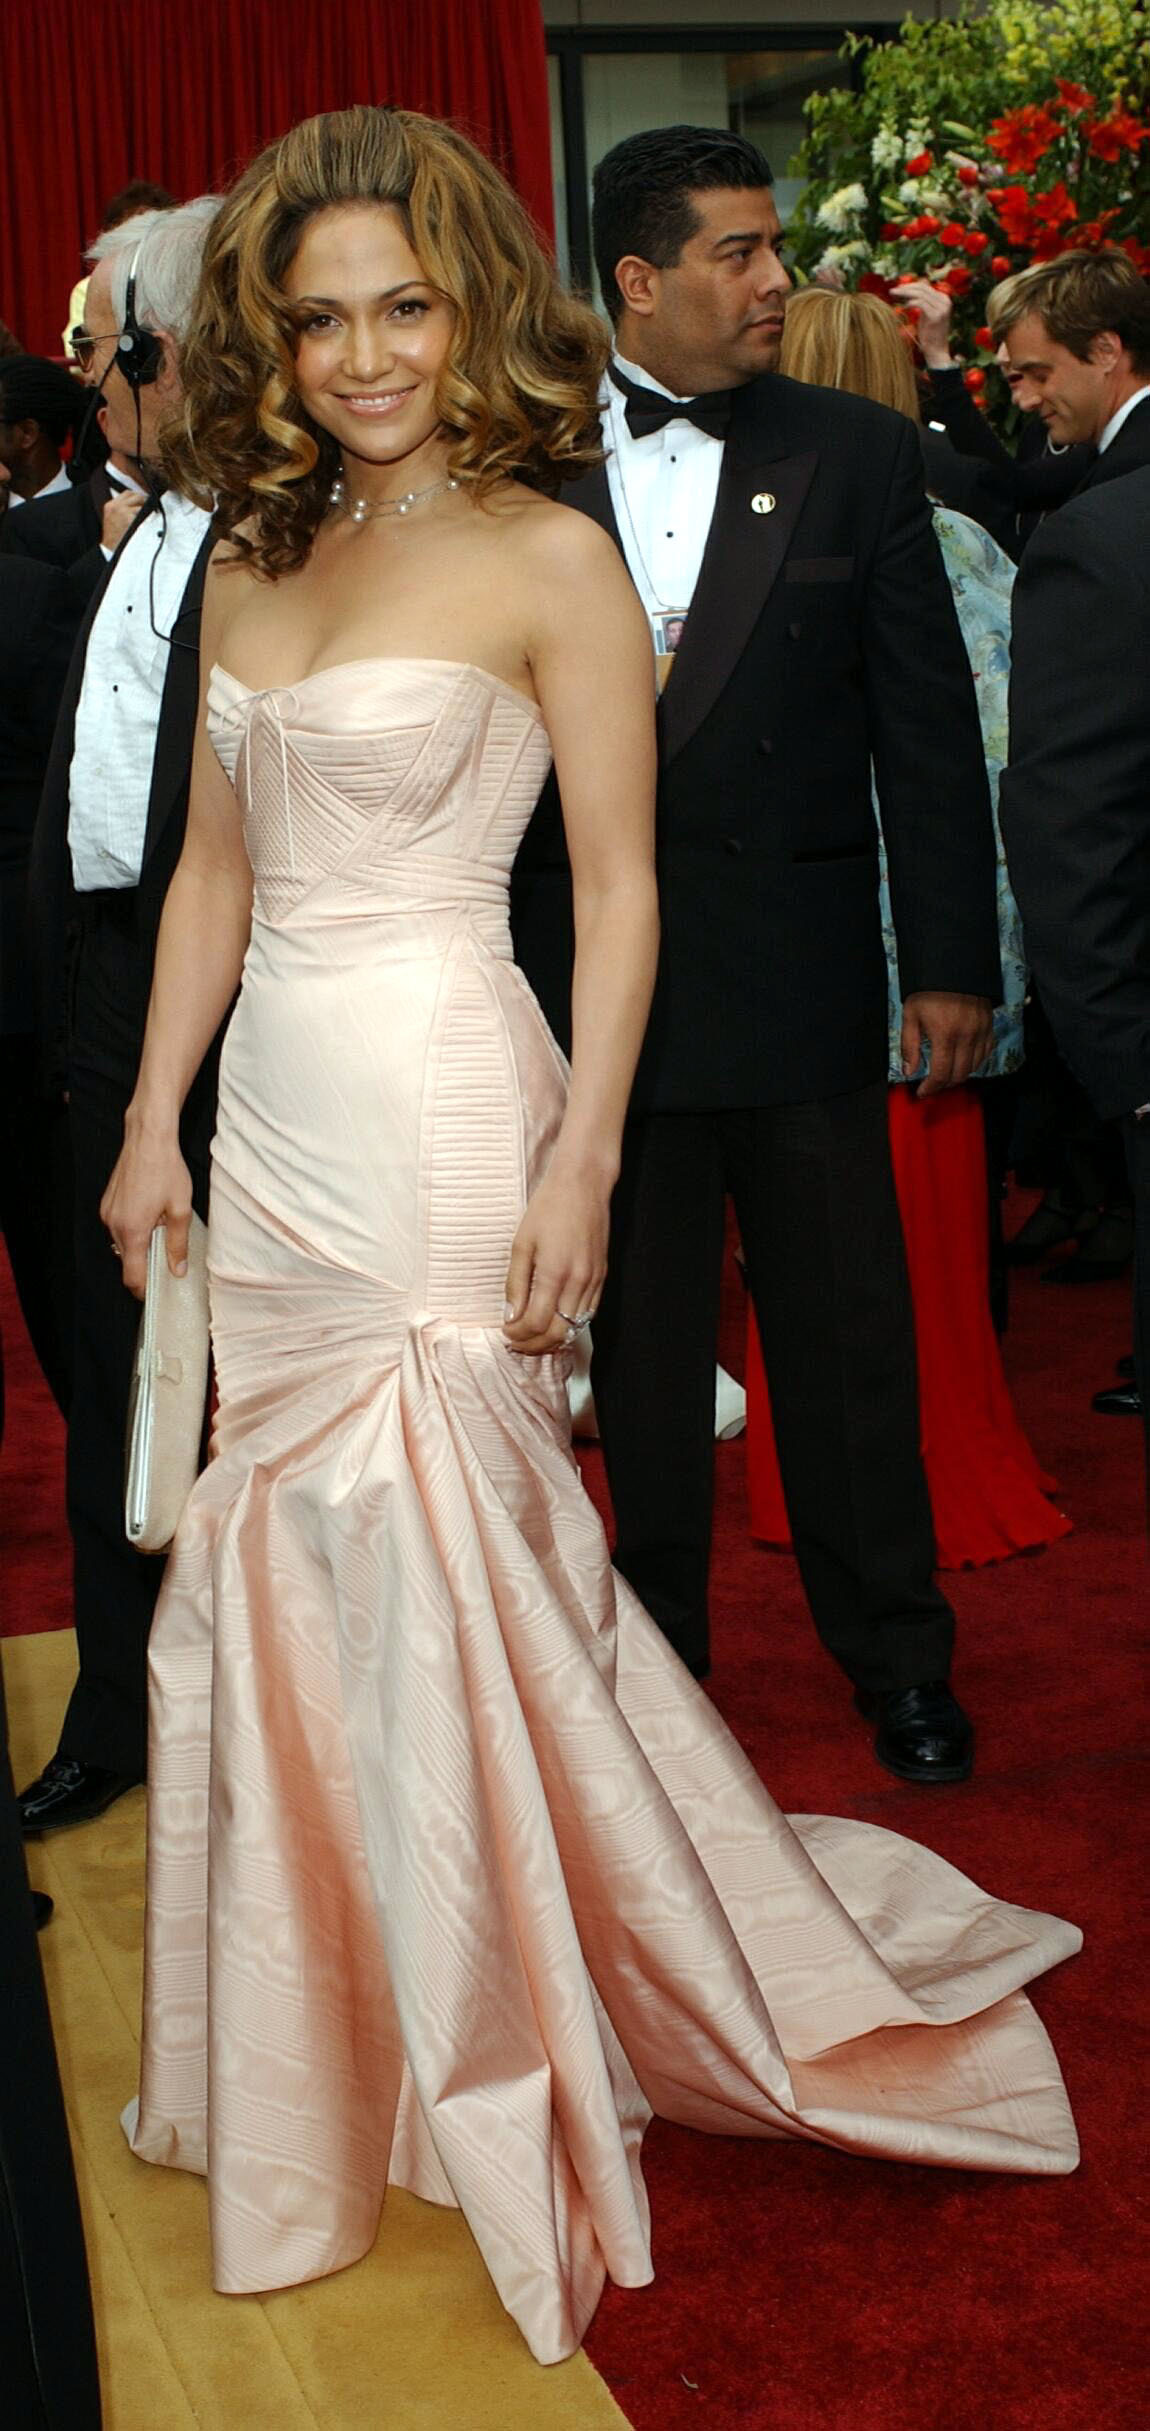 JLo at the 2002 Oscars